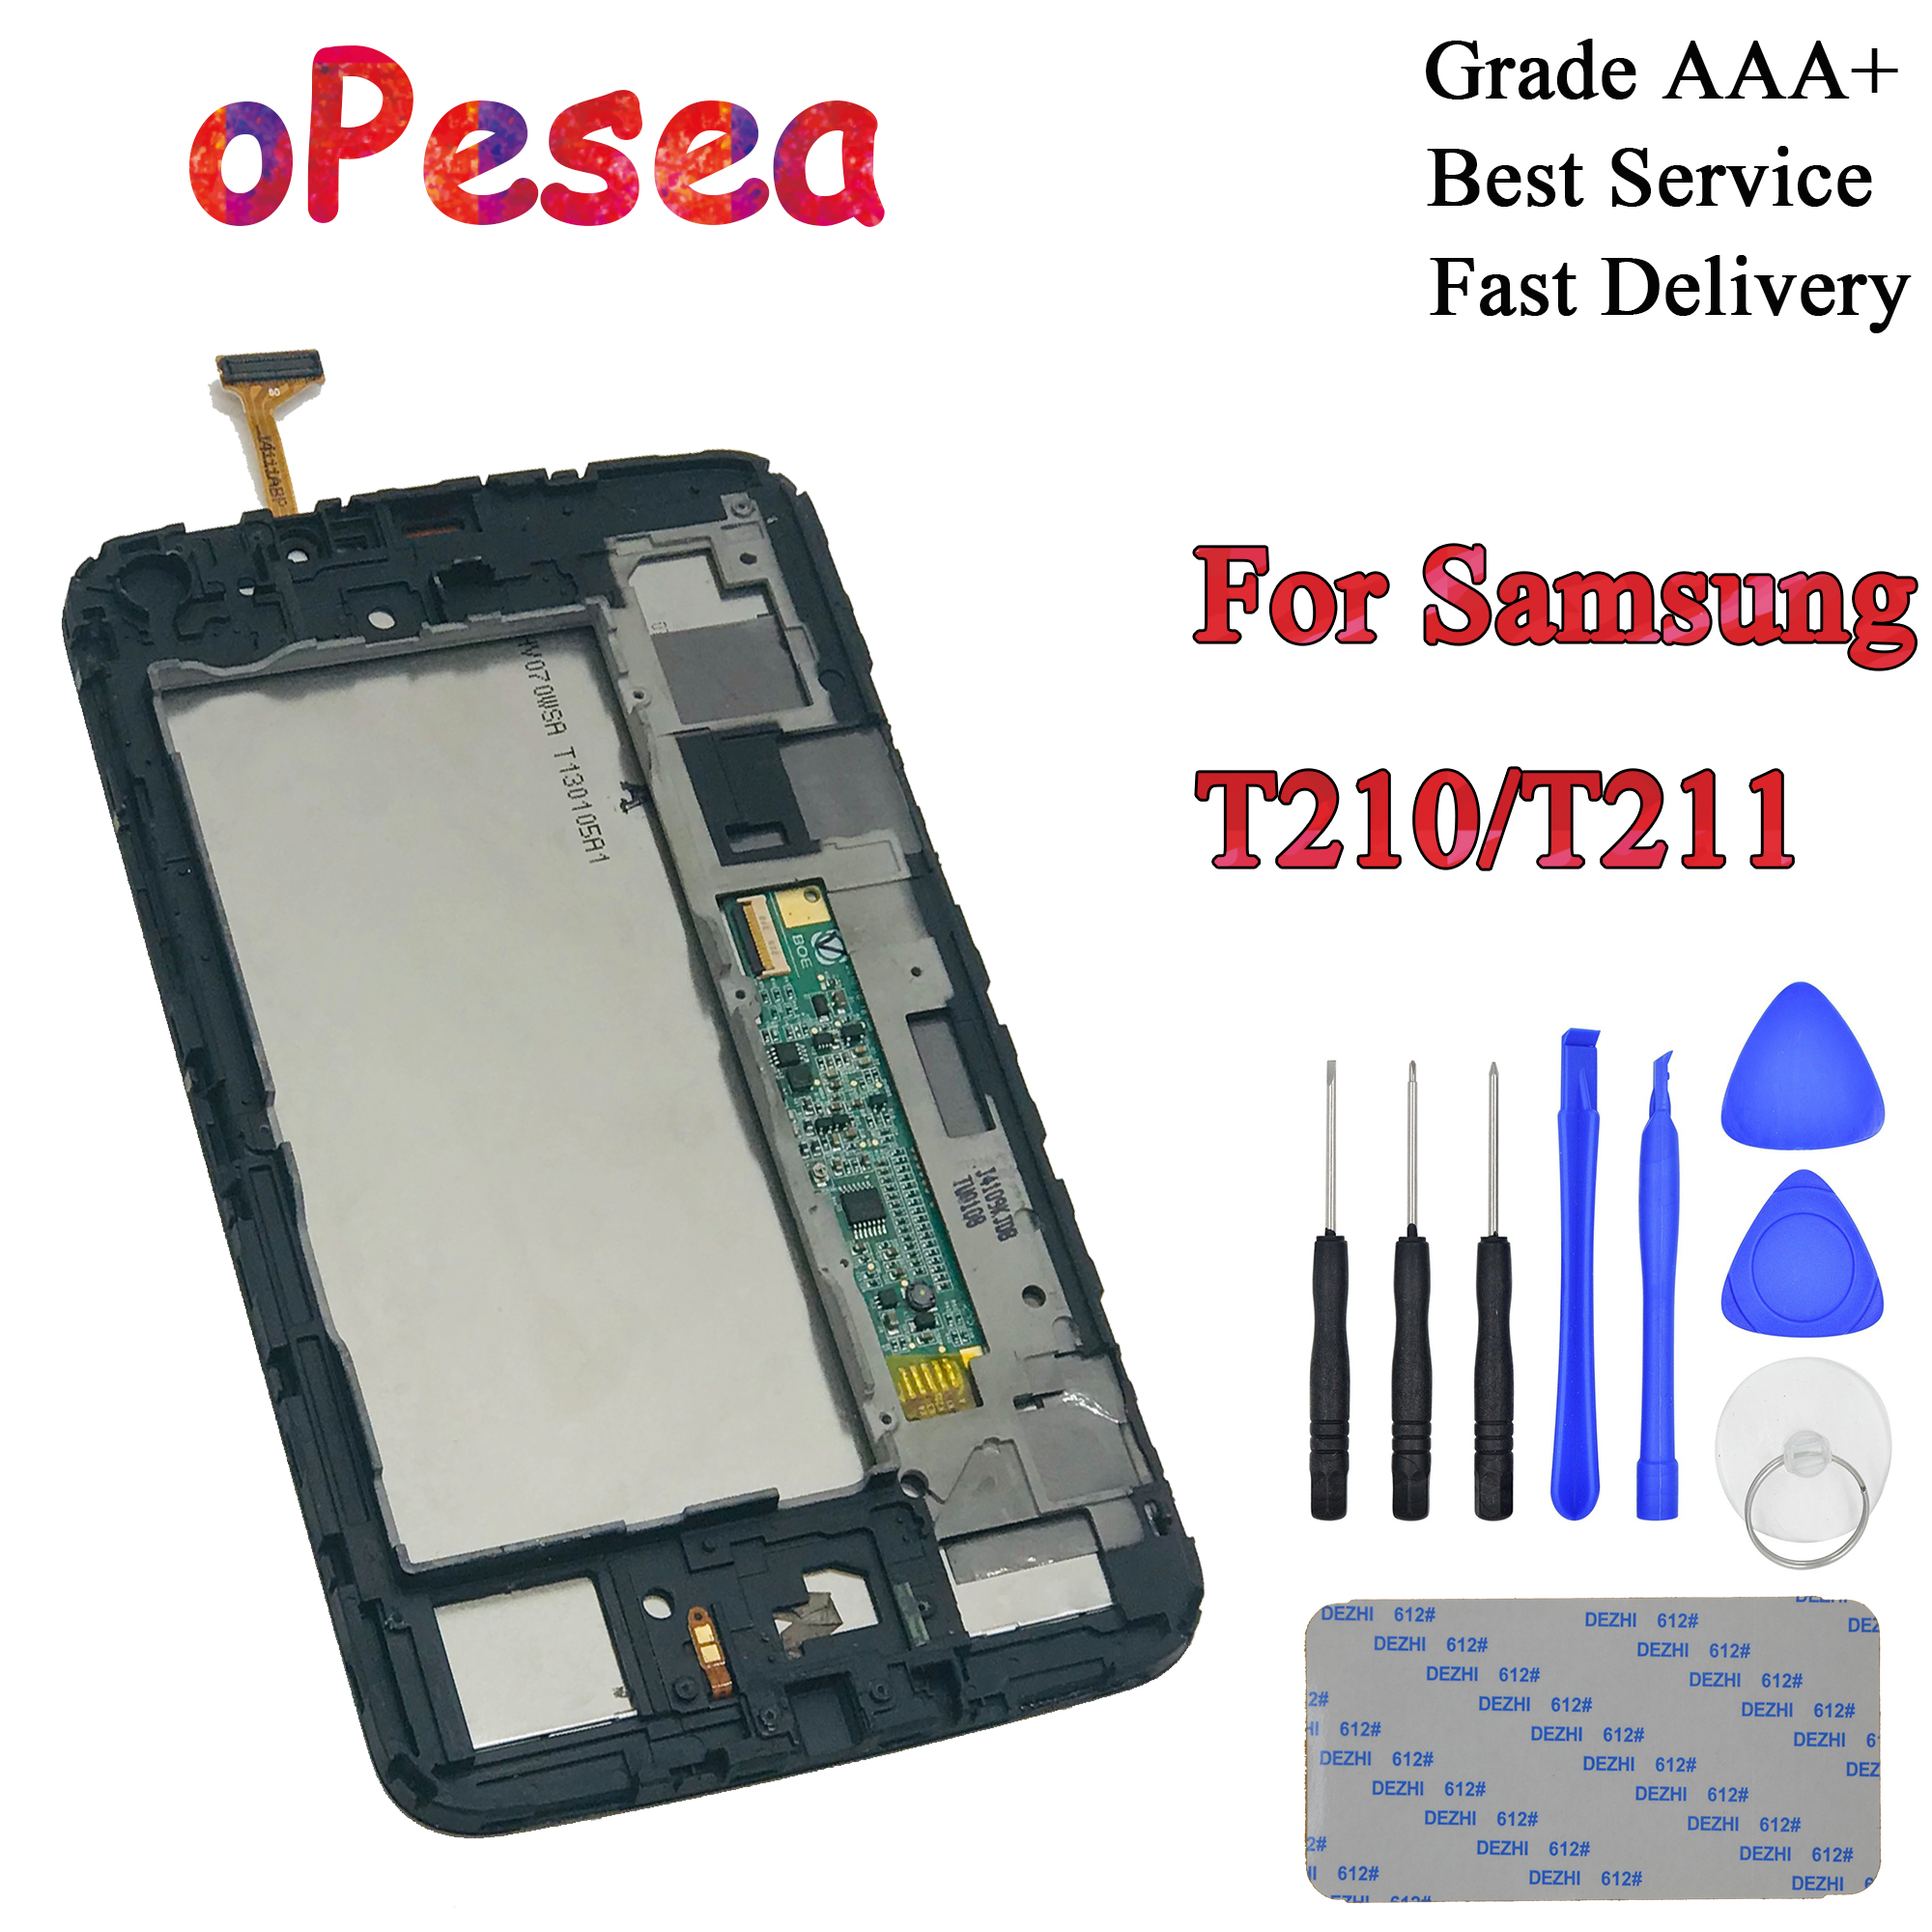 OPesea For Samsung Galaxy Tab 3 7.0 T211 T210 SM-T210 SM-T211 Touch Screen Digitizer LCD Display Panel Assembly With Frame